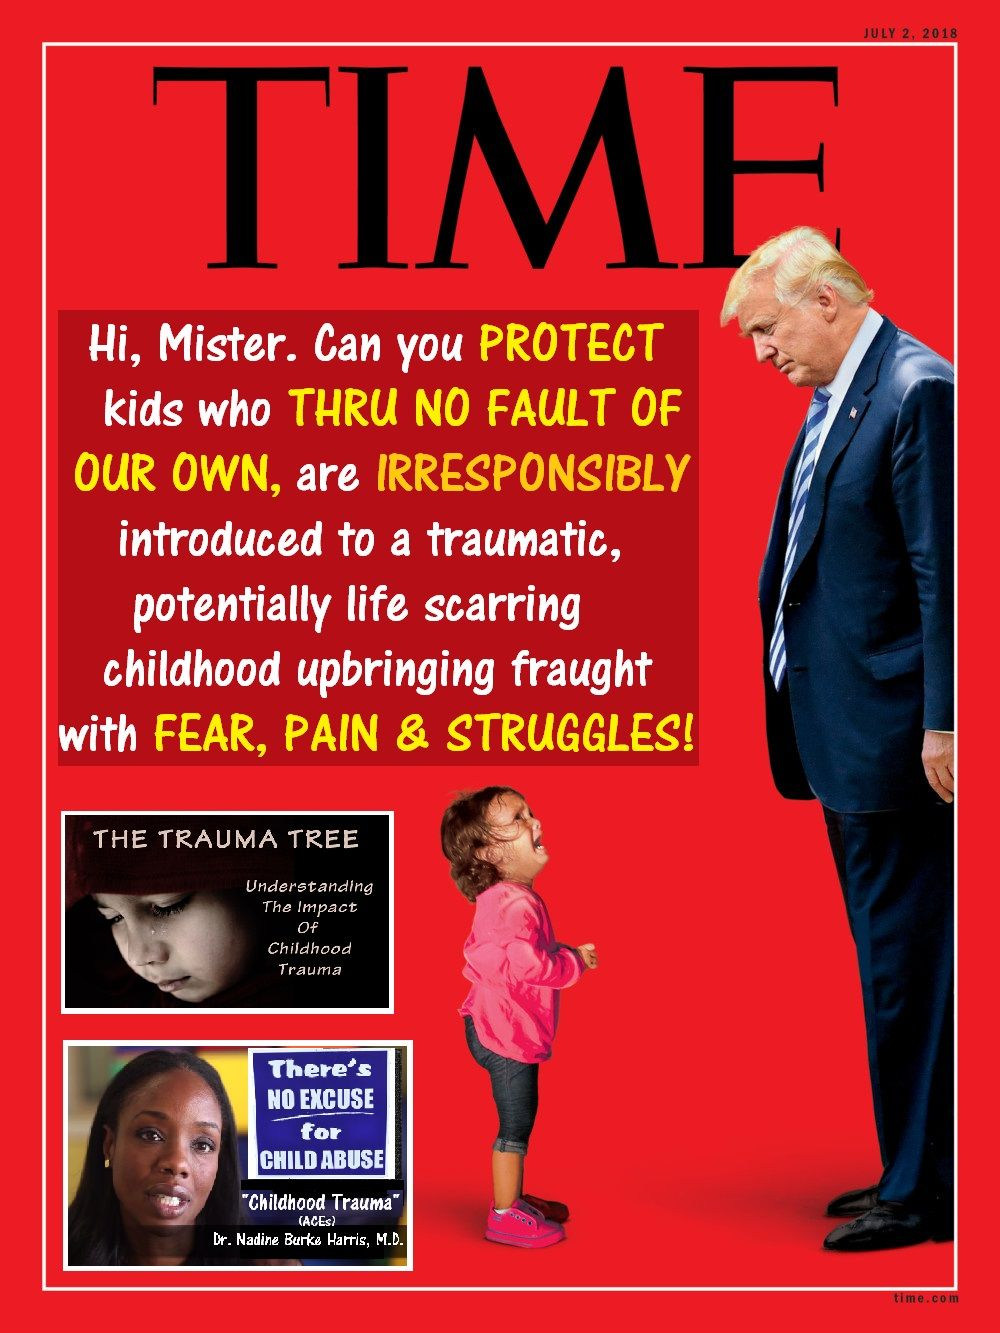 trump-immigration-child abuse_2.jpg